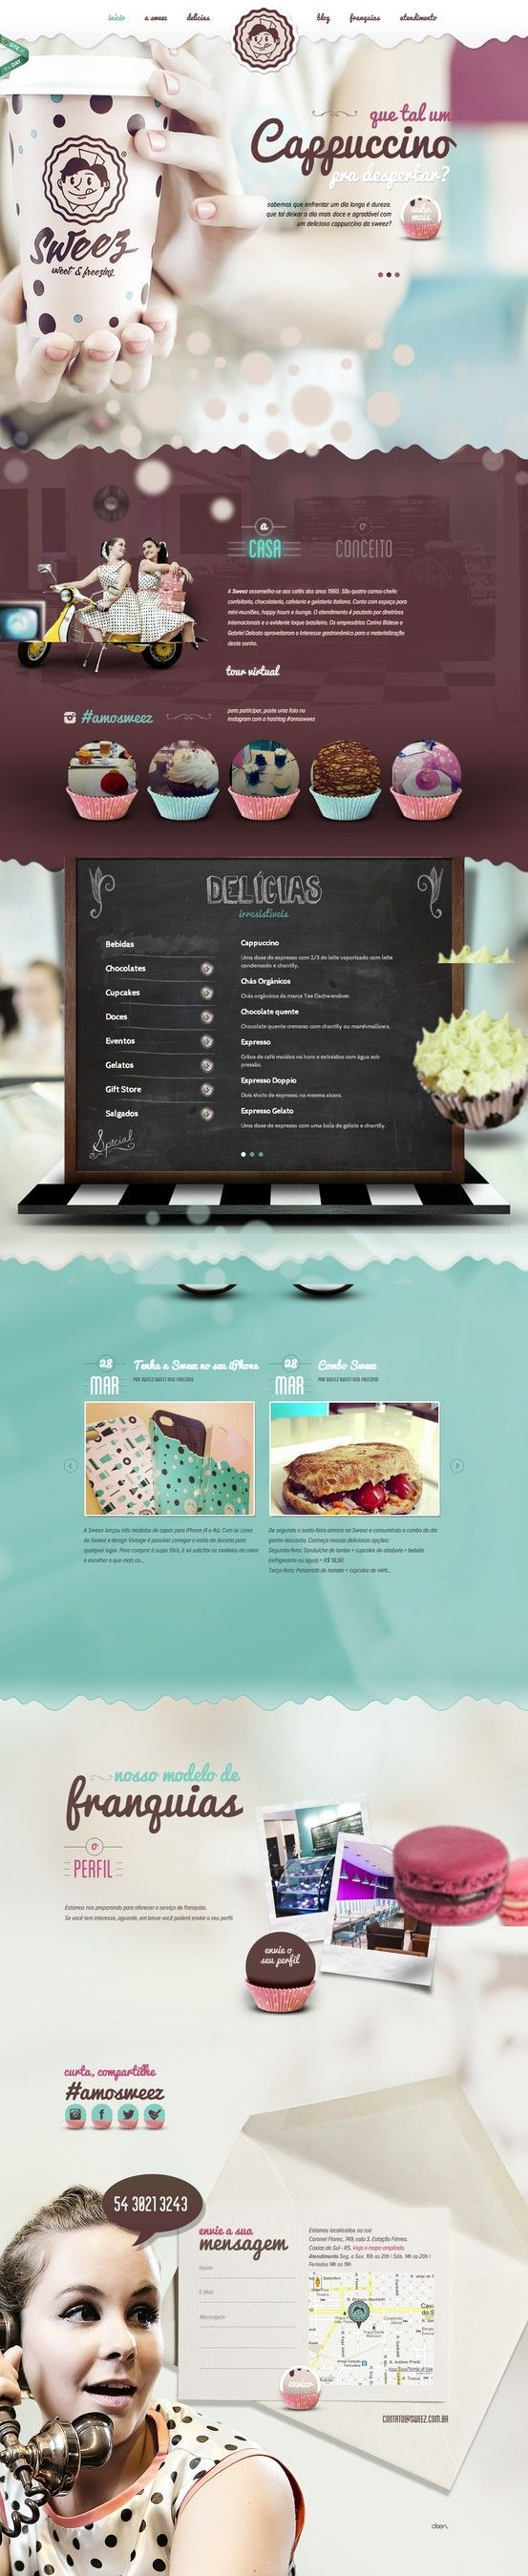 Website Inspiration – September 2013